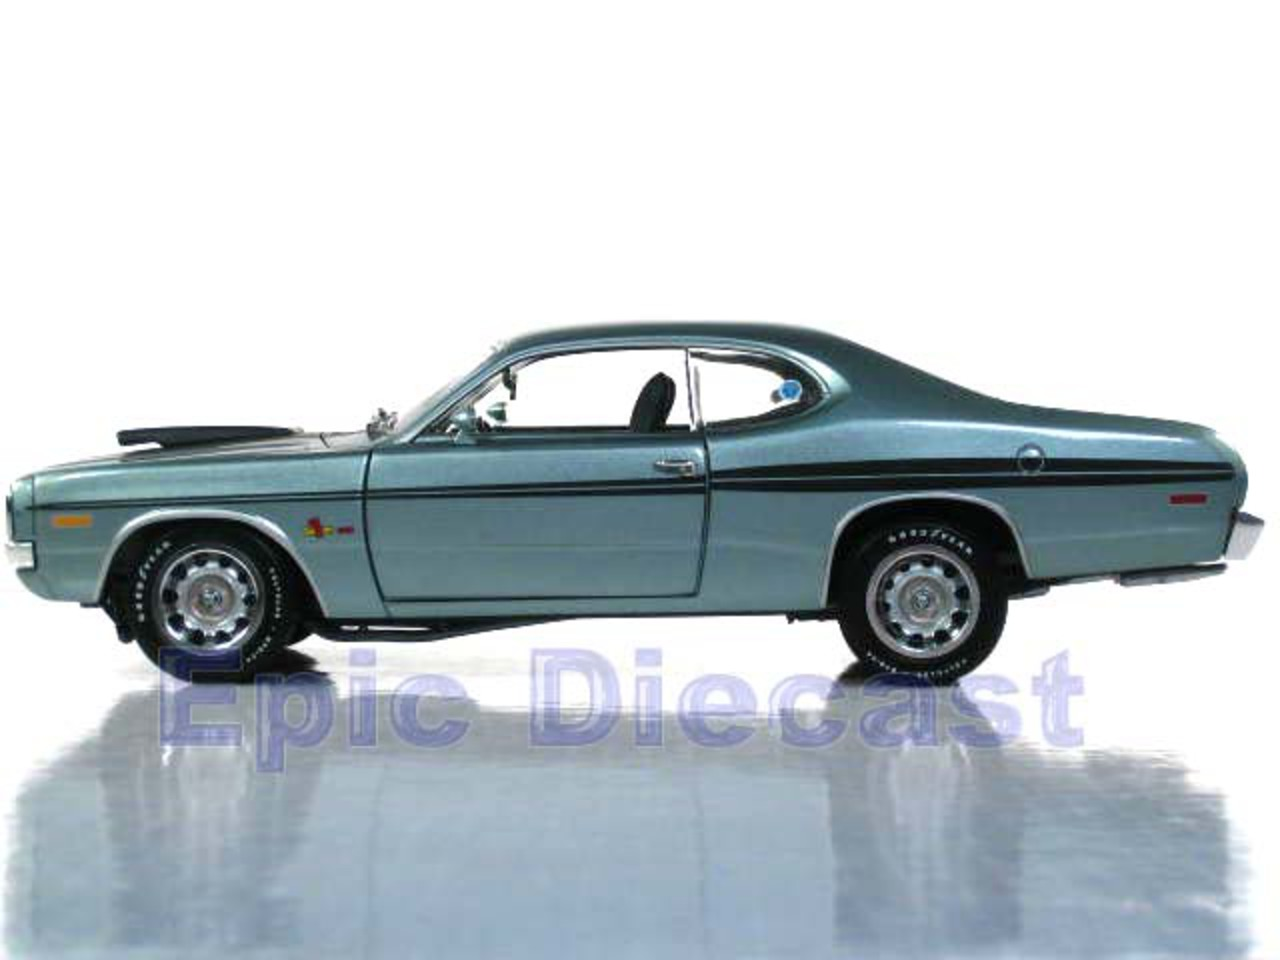 Mr. Norms 1972 Dodge Demon GSS 1:18 scale diecast car manufactured for